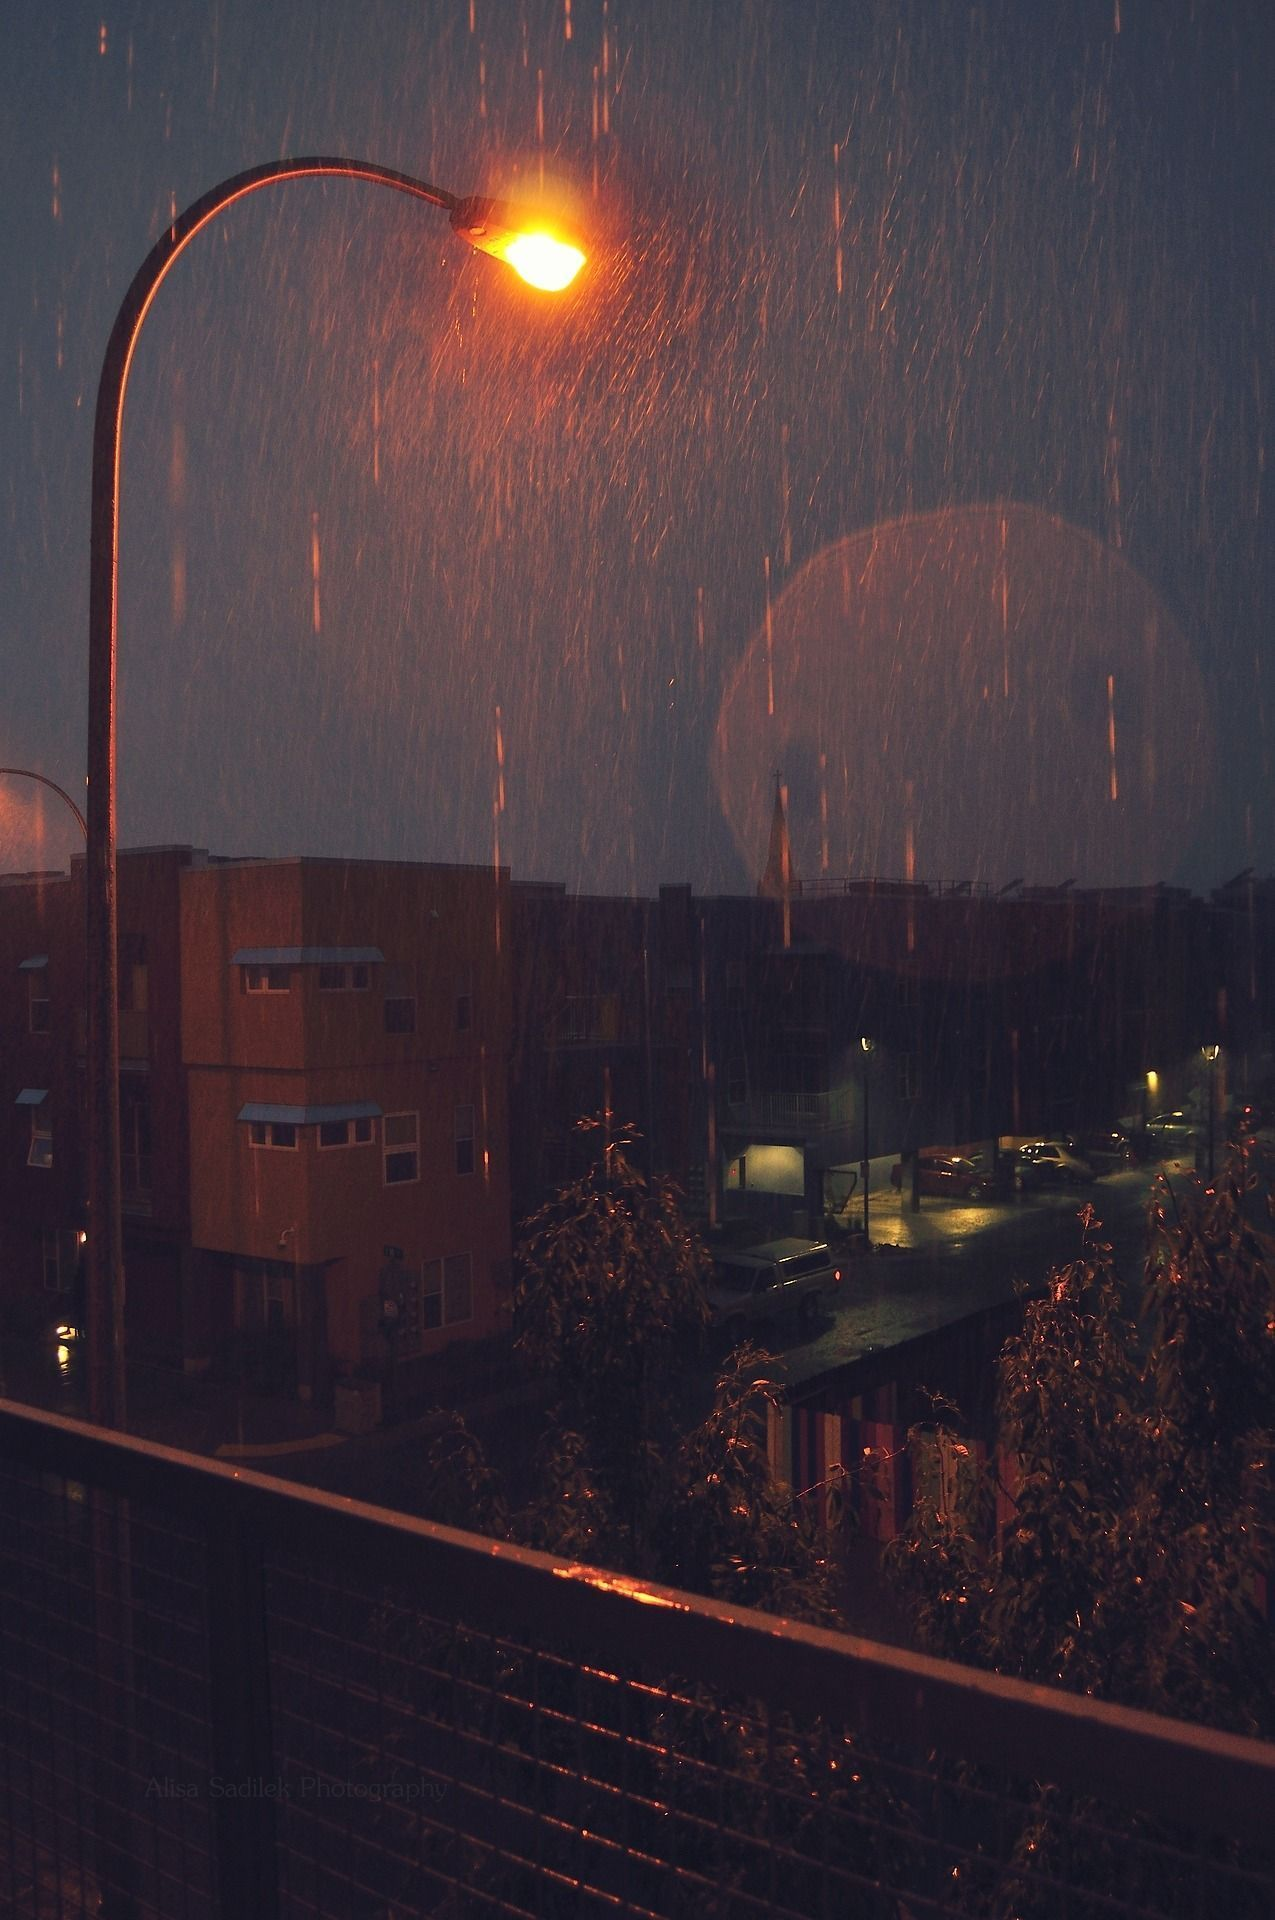 Aesthetics Rainy City Wallpapers